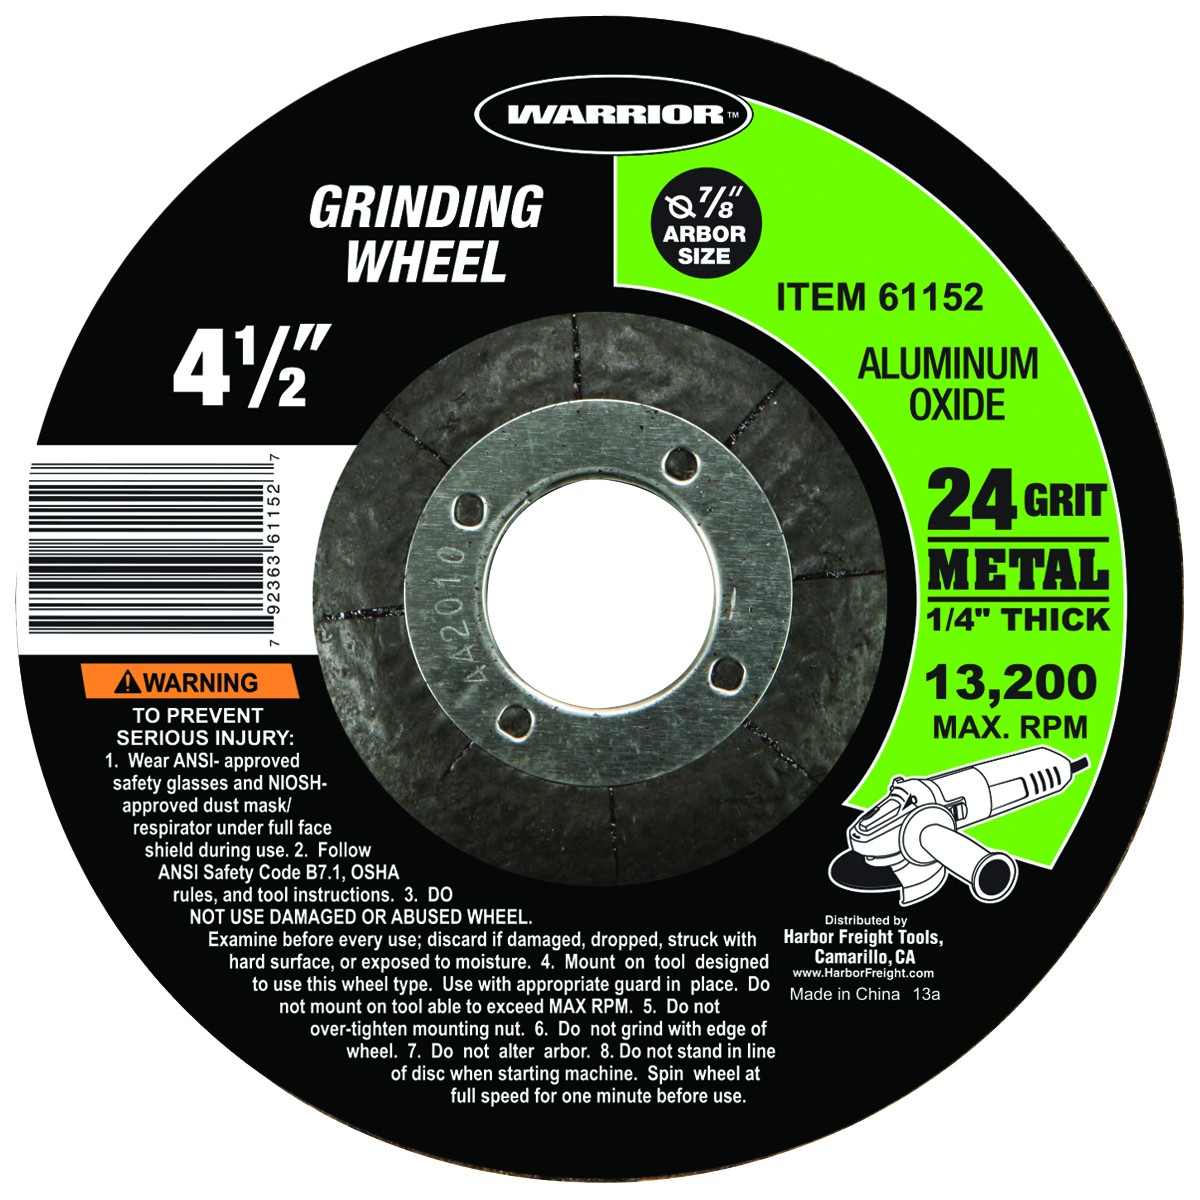 4-1/2 in. 24 Grit Metal Grinding Wheel